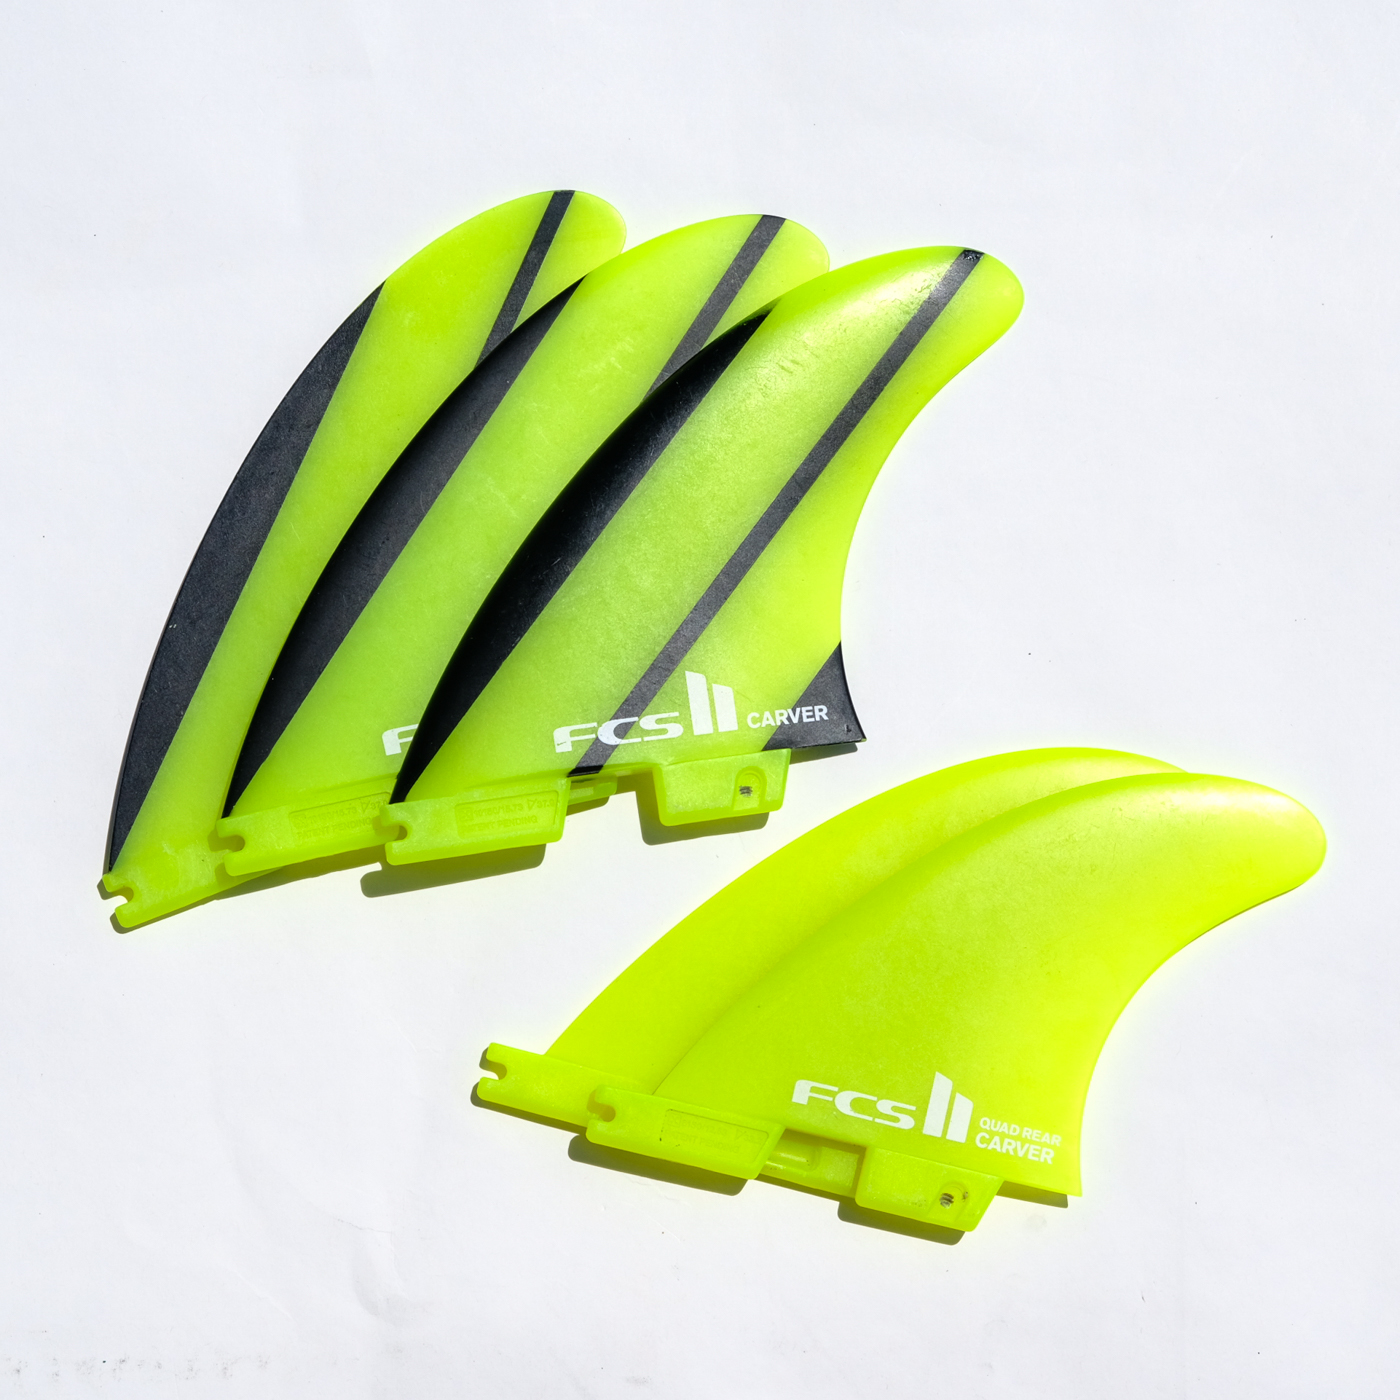 【中古品 FCSII CARVER LARGE & CARVER QUAD REAR】 No.kf030